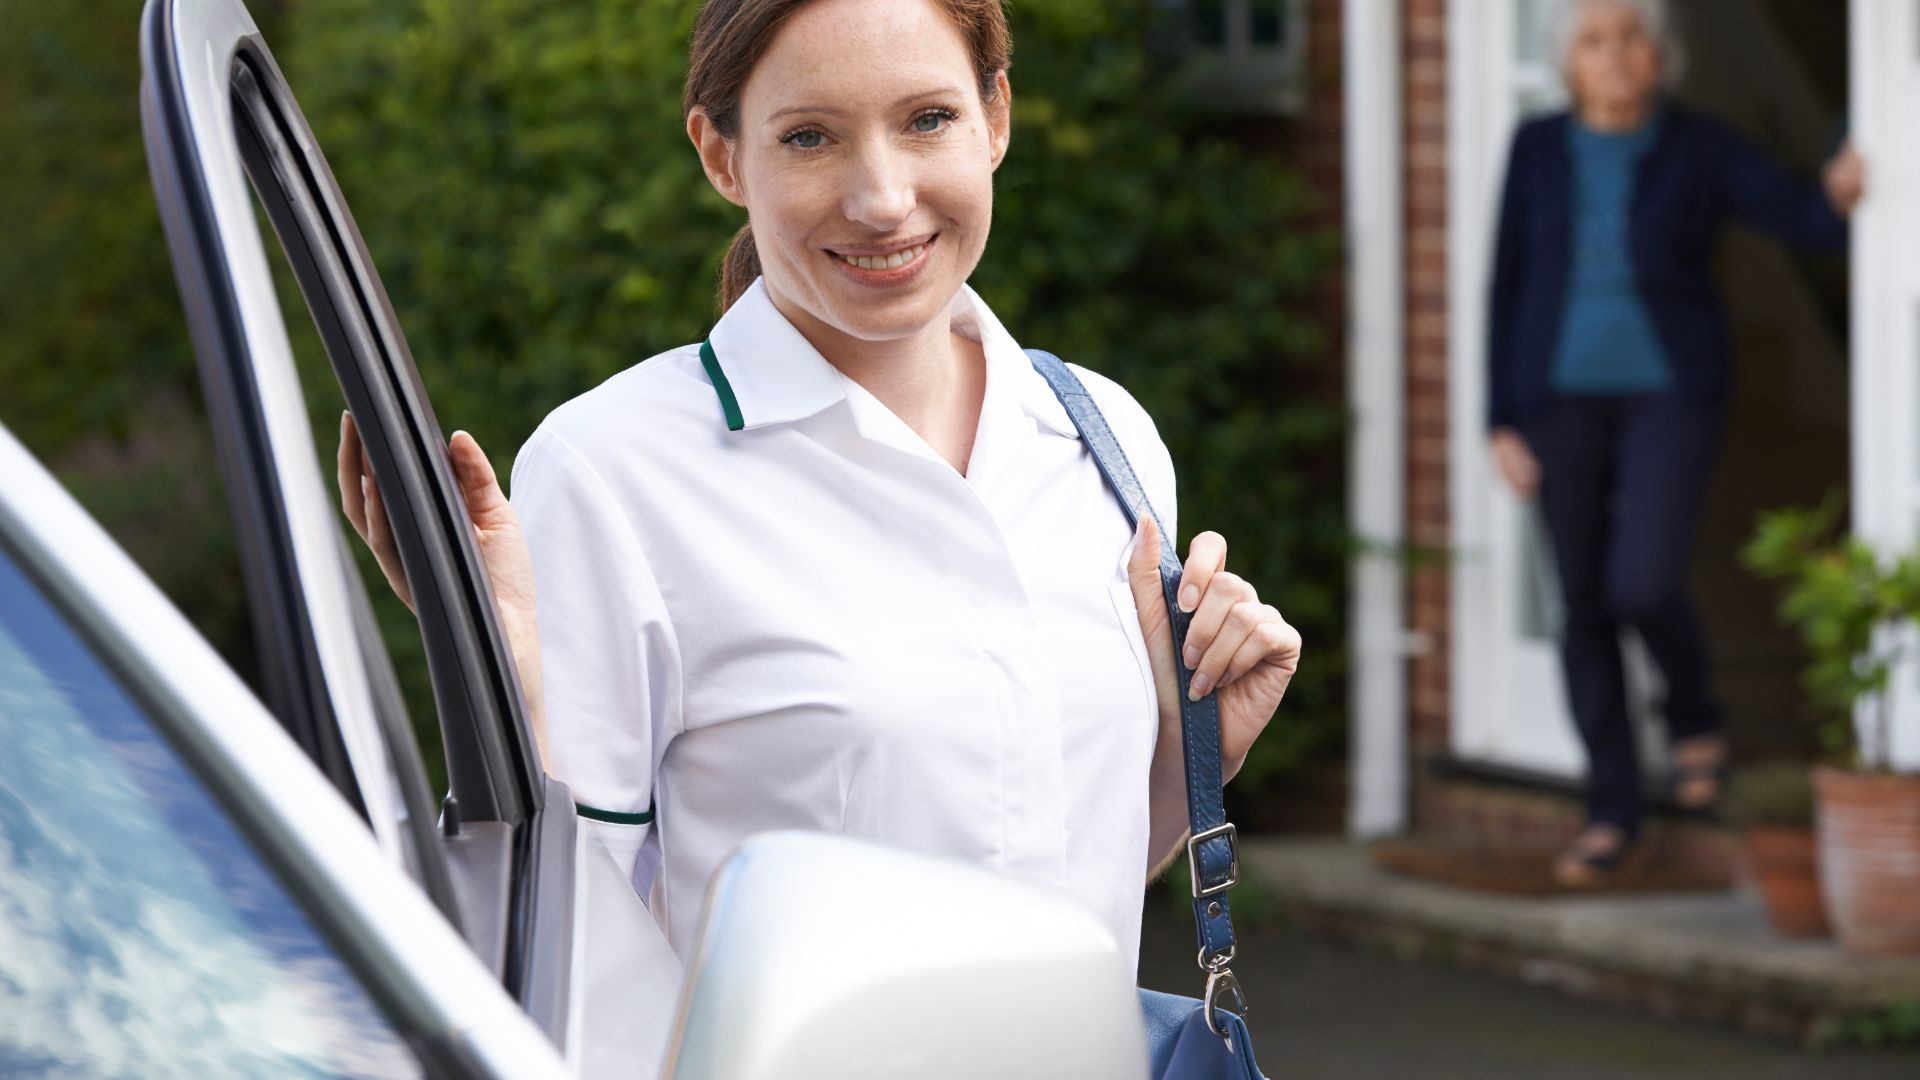 NHS workers can get 75 percent rebate on temporary car insurance during covid crisis